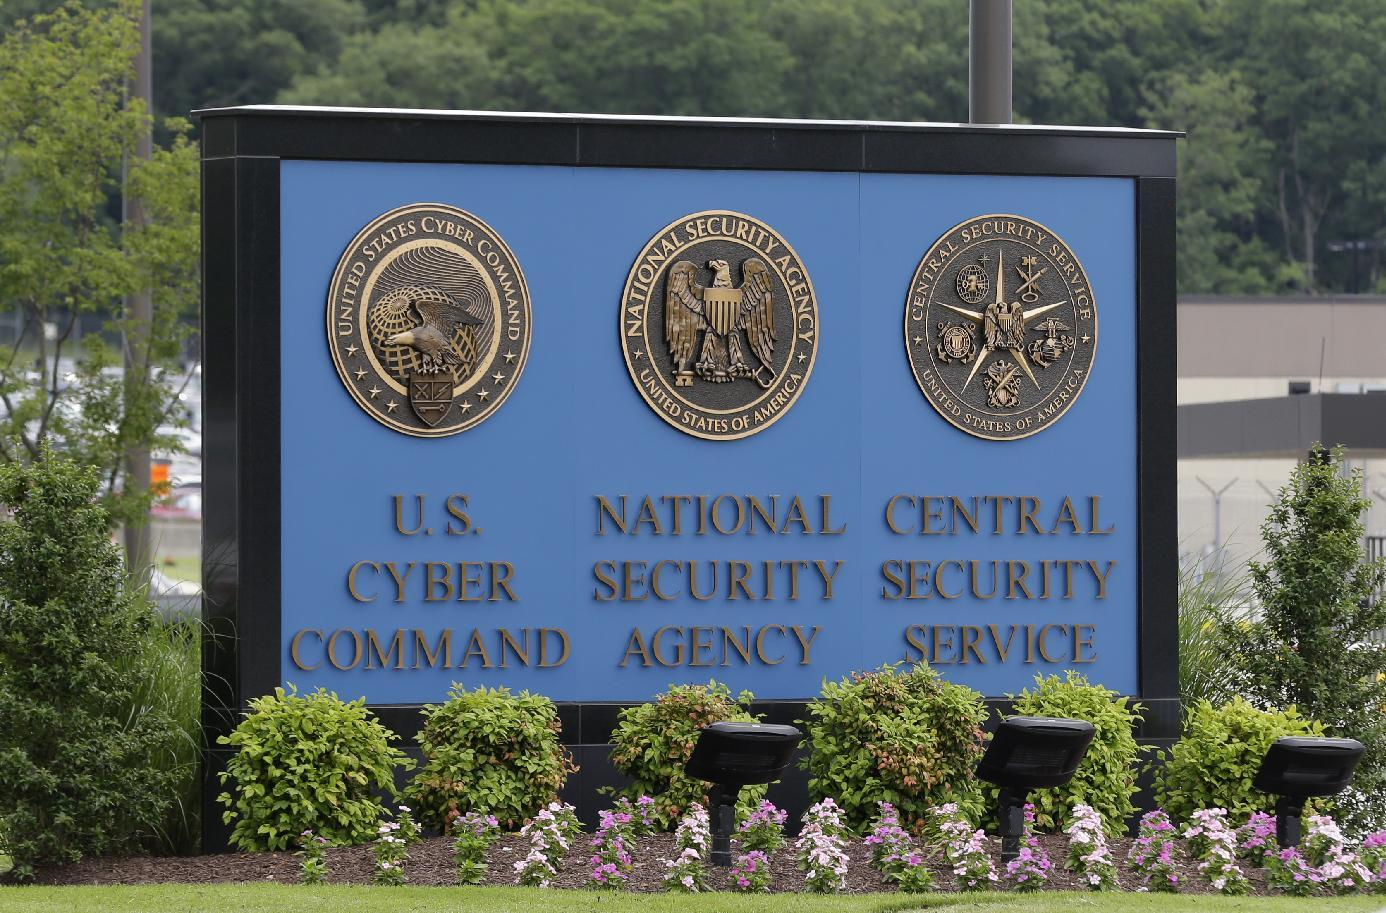 After break, Senate to reconsider Patriot Act extension